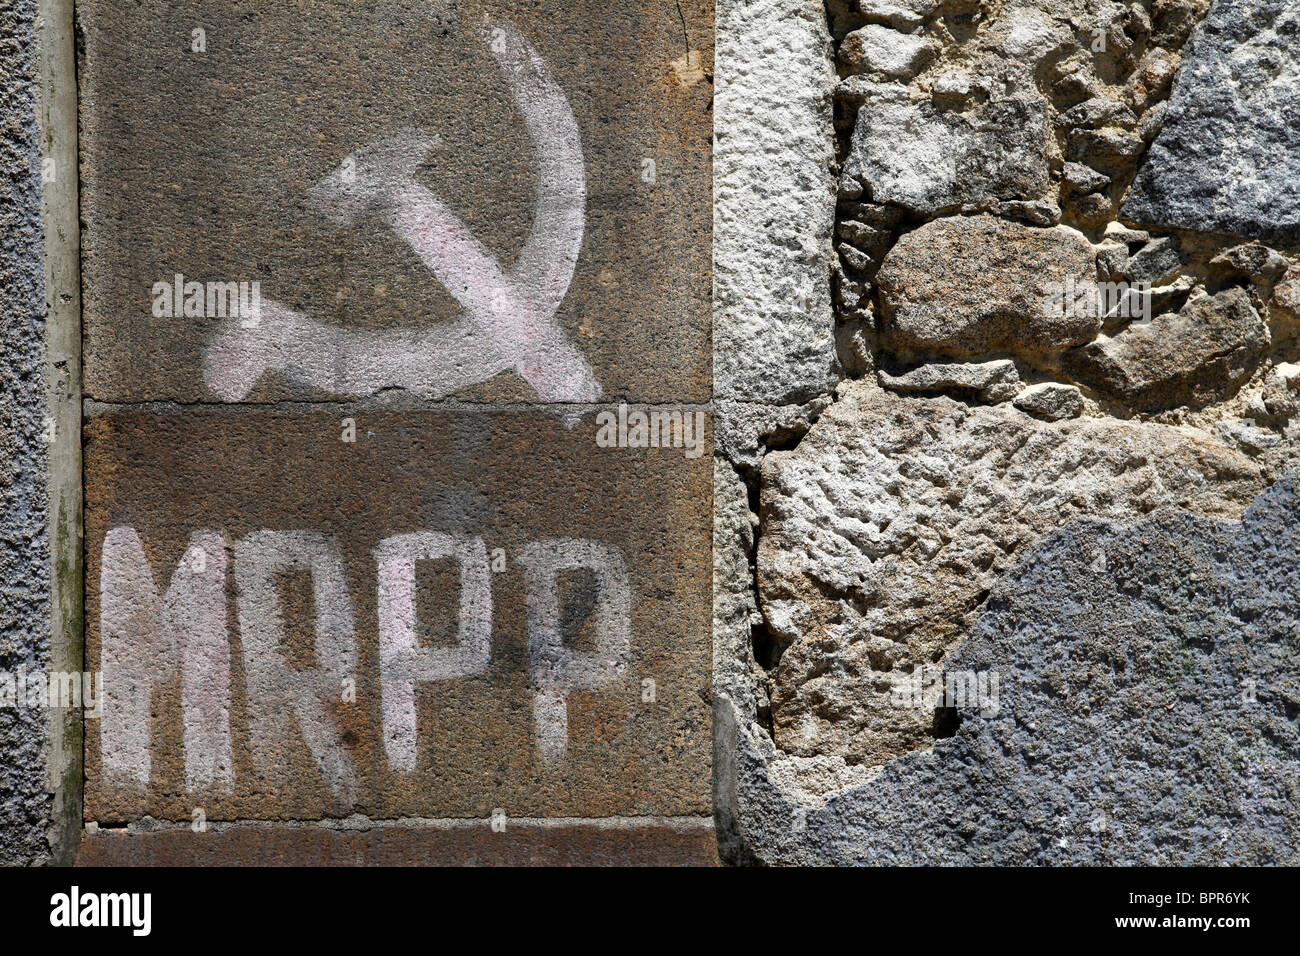 A Communist hammer and sickle symbol in daubed onto a wall in Braga, Portugal. - Stock Image